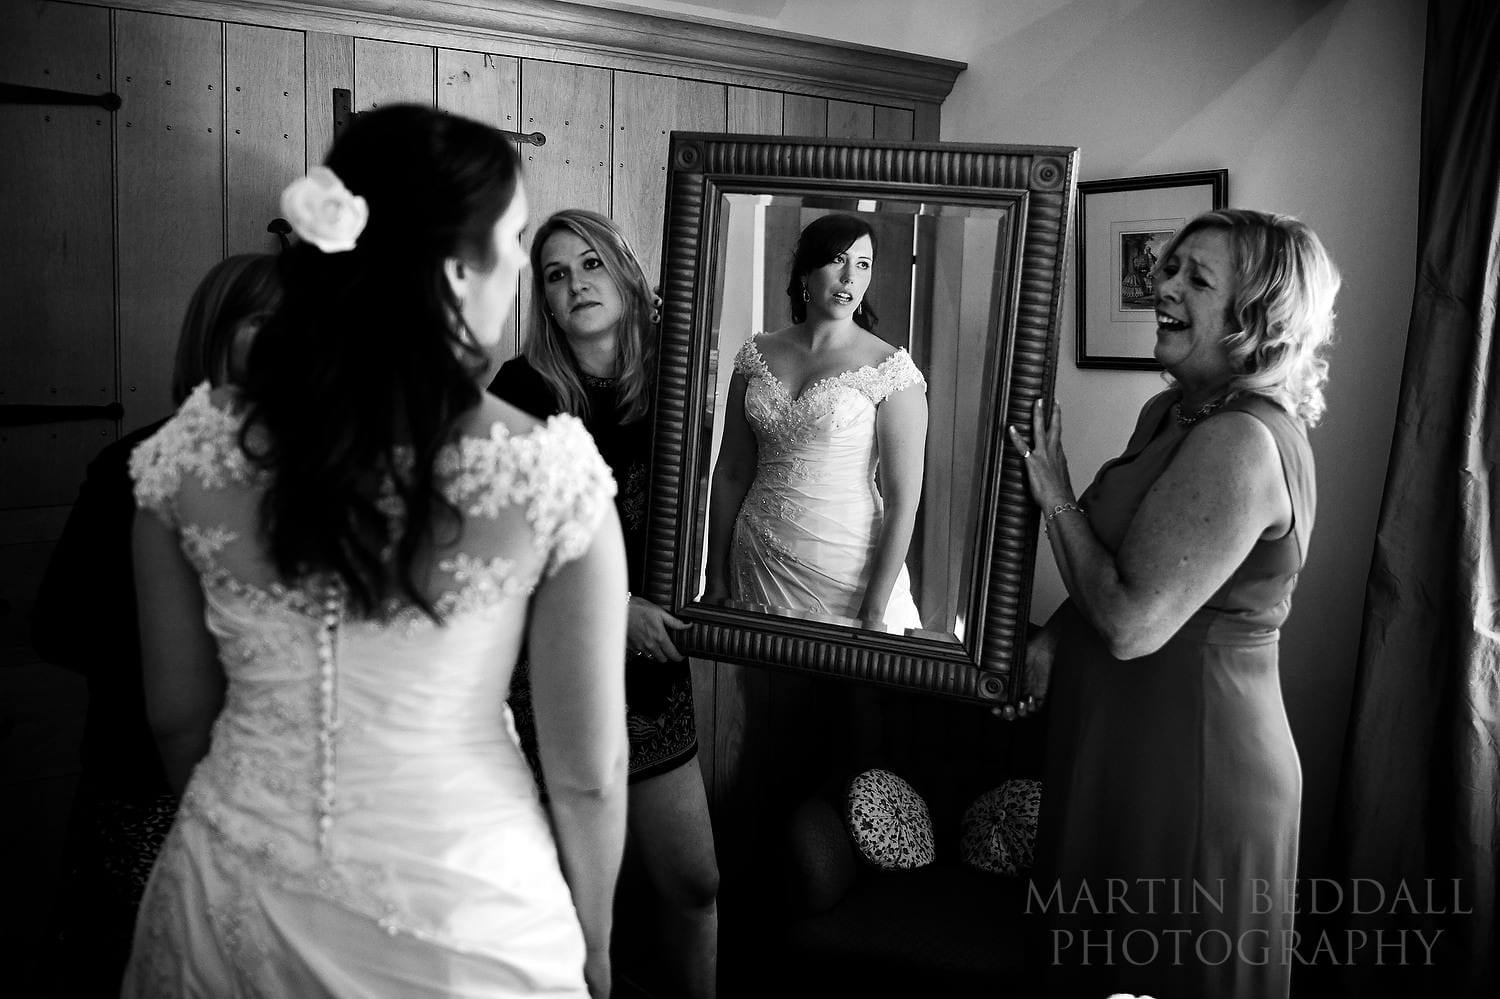 Holding up the mirror for the bride